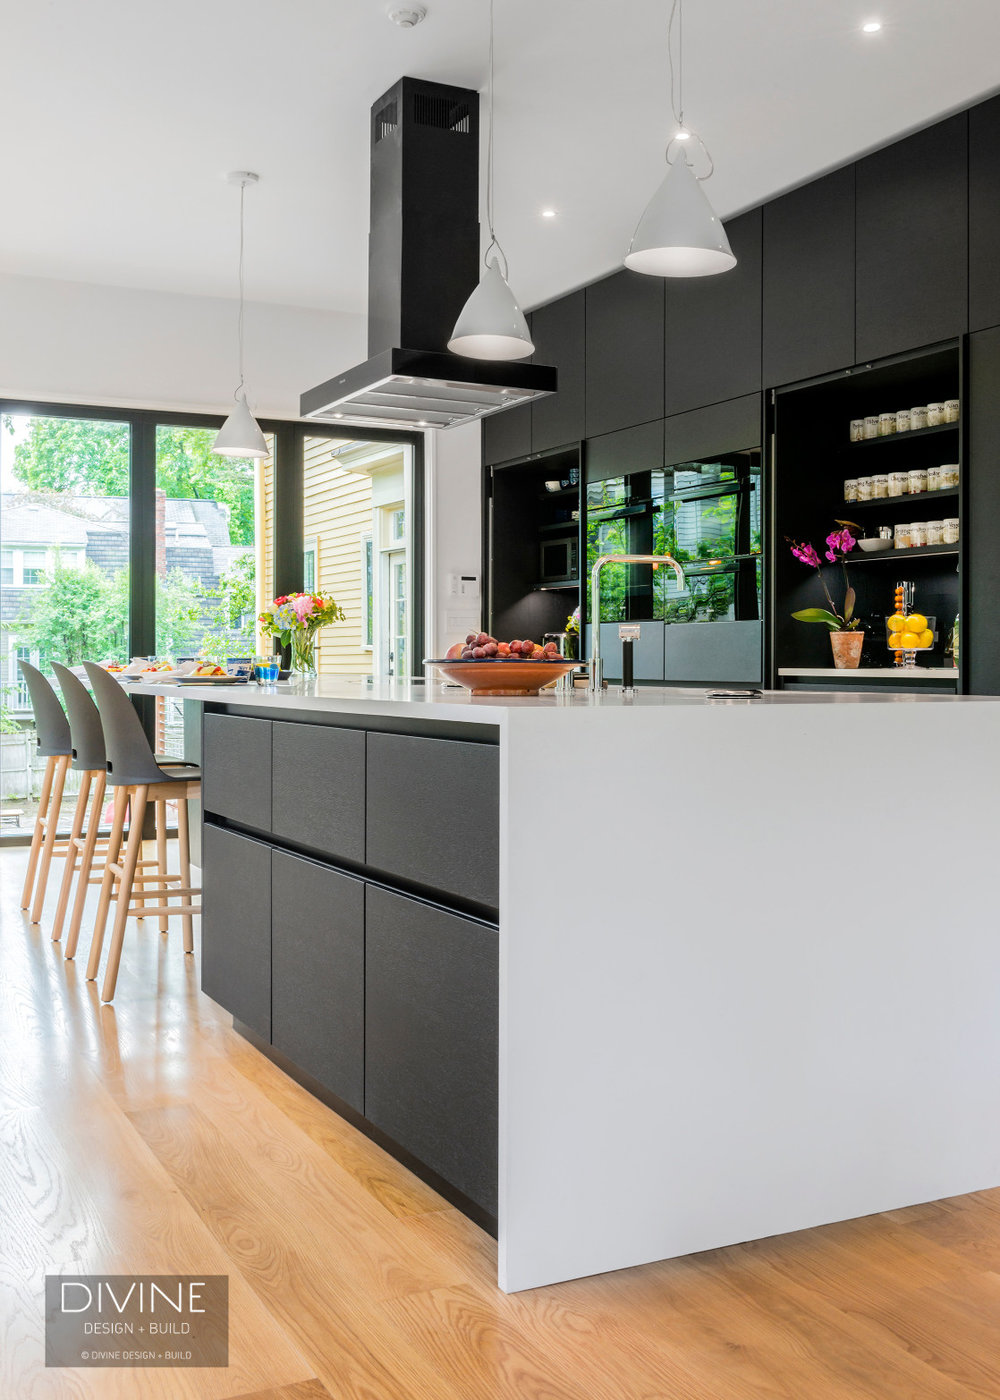 Modern Black And White Leicht Kitchen With Handleless Design. Black Miele  Appliances And Niche Shelving